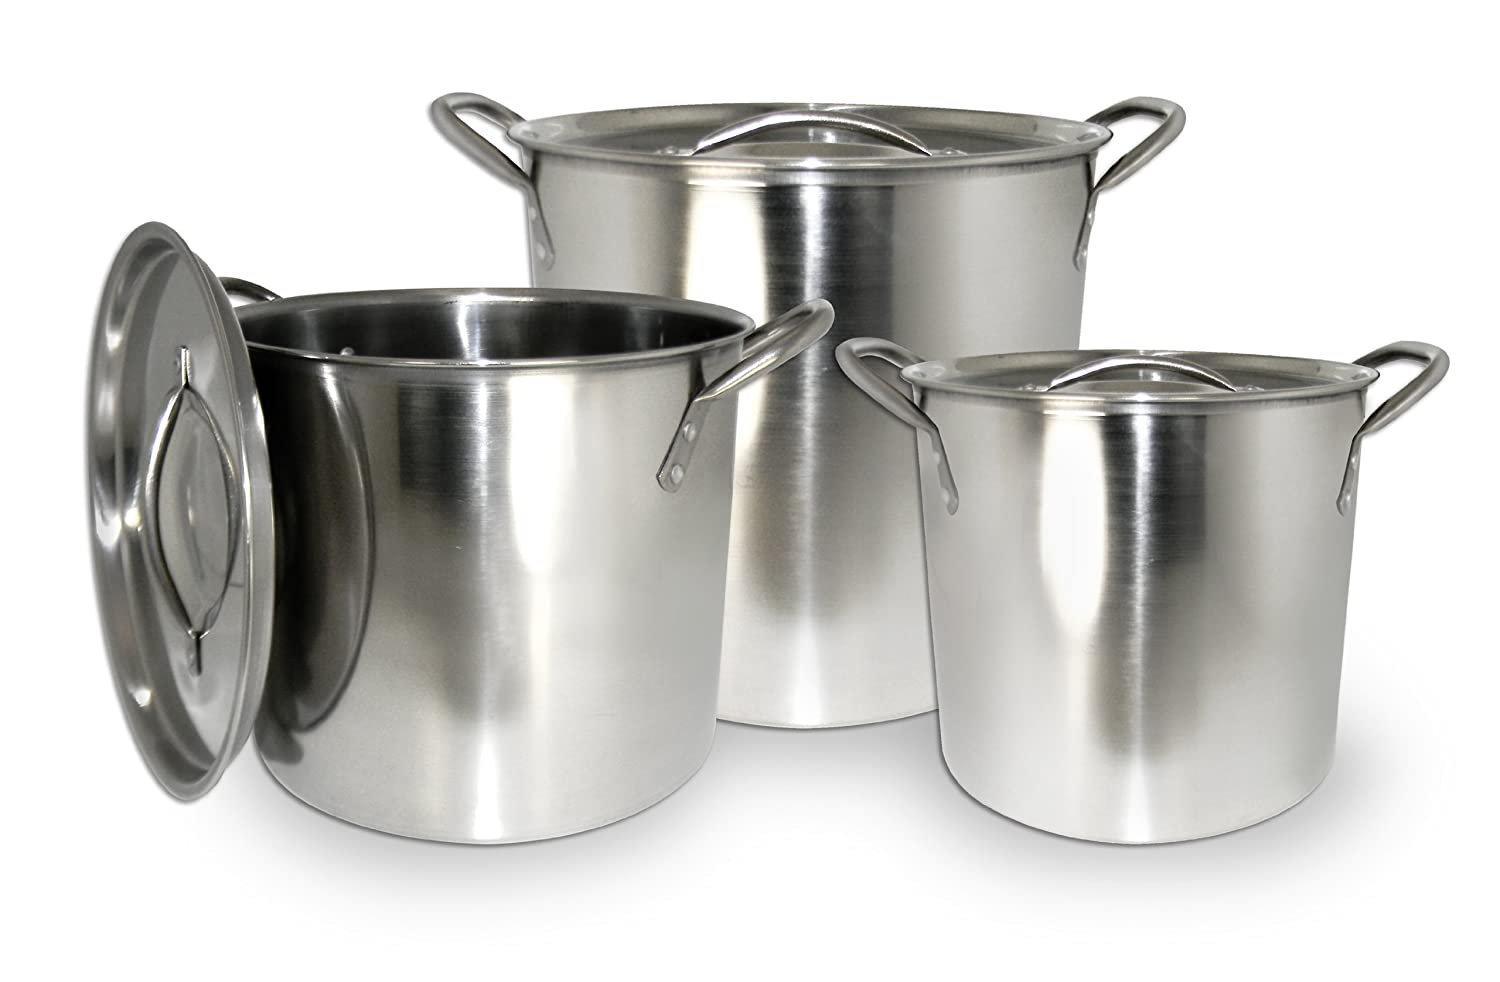 ExcelSteel Stainless Steel Stockpot with Lids, Set of 3 570